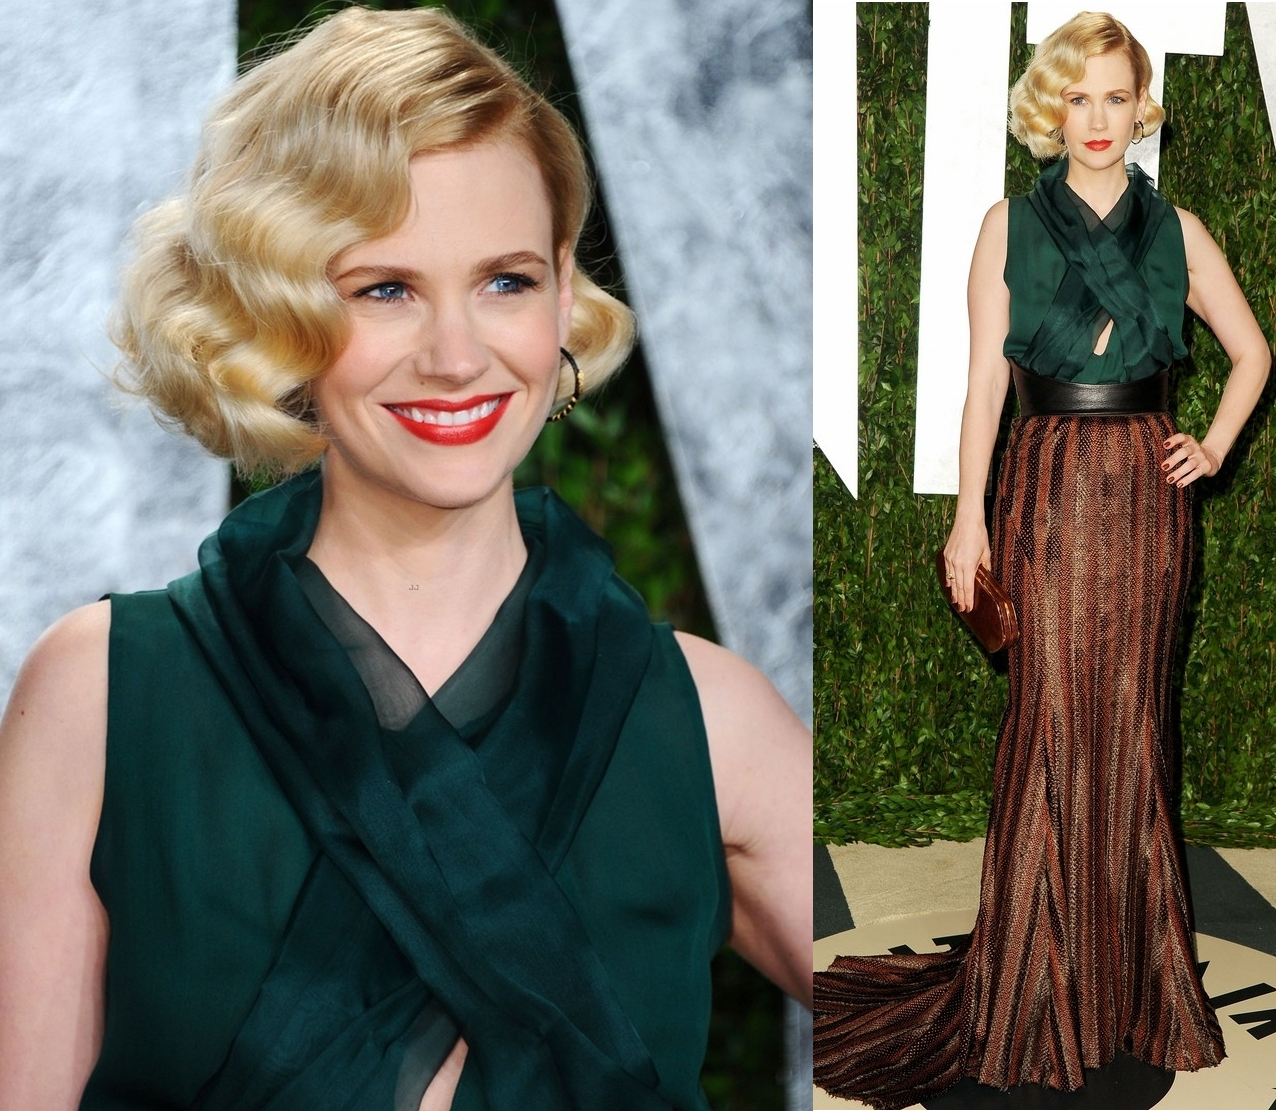 http://3.bp.blogspot.com/-9H1p3KGVjsg/T0t2fFgFhpI/AAAAAAAAEdQ/wM7ilc5hZSg/s1600/january-jones-vanity-fair-01.jpg